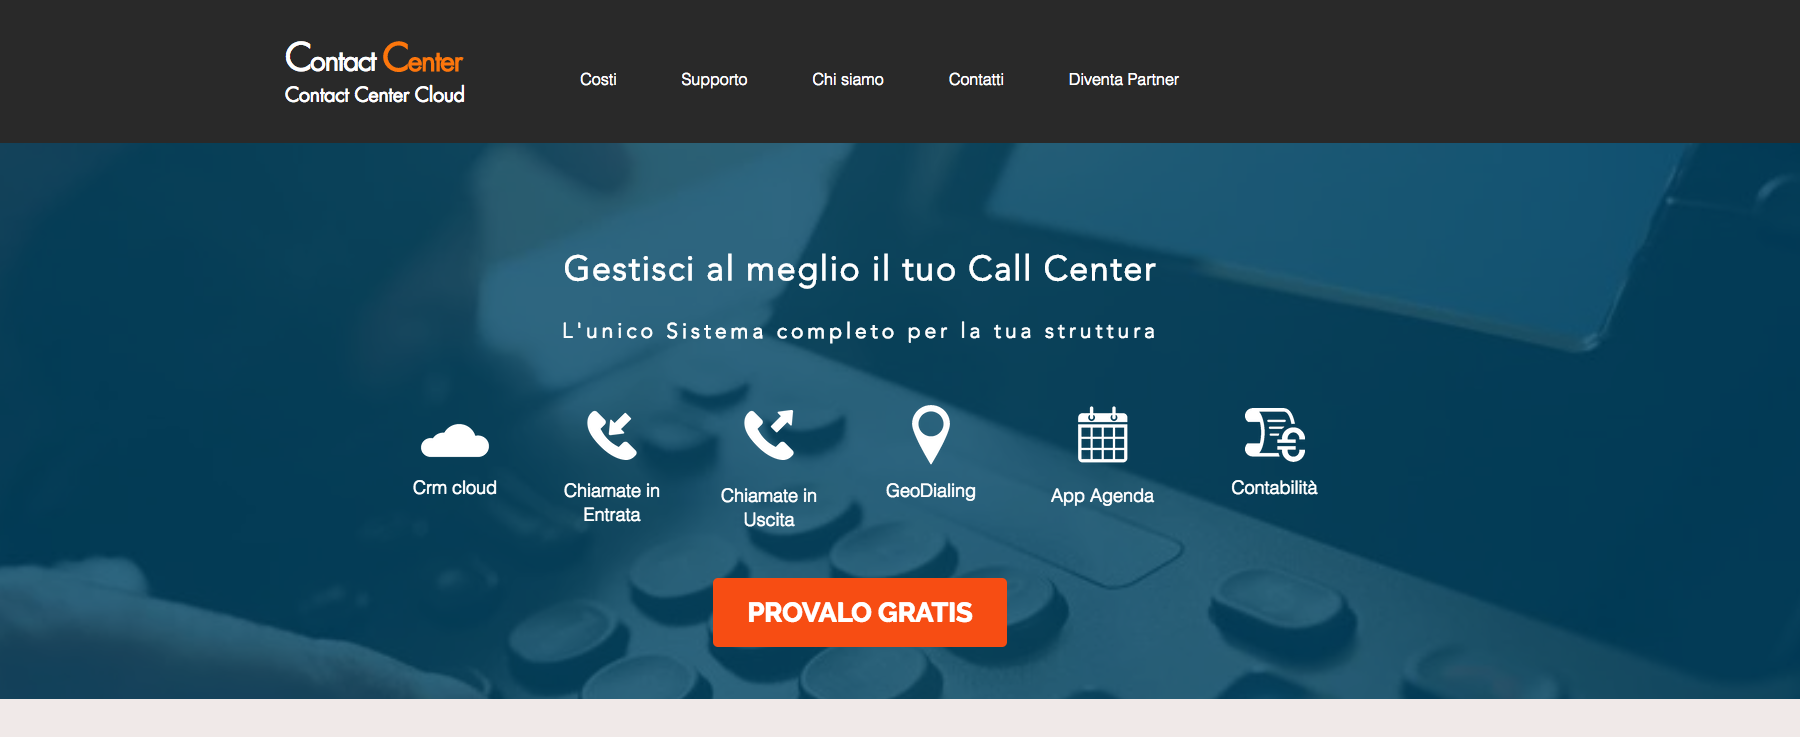 Contact Center Cloud